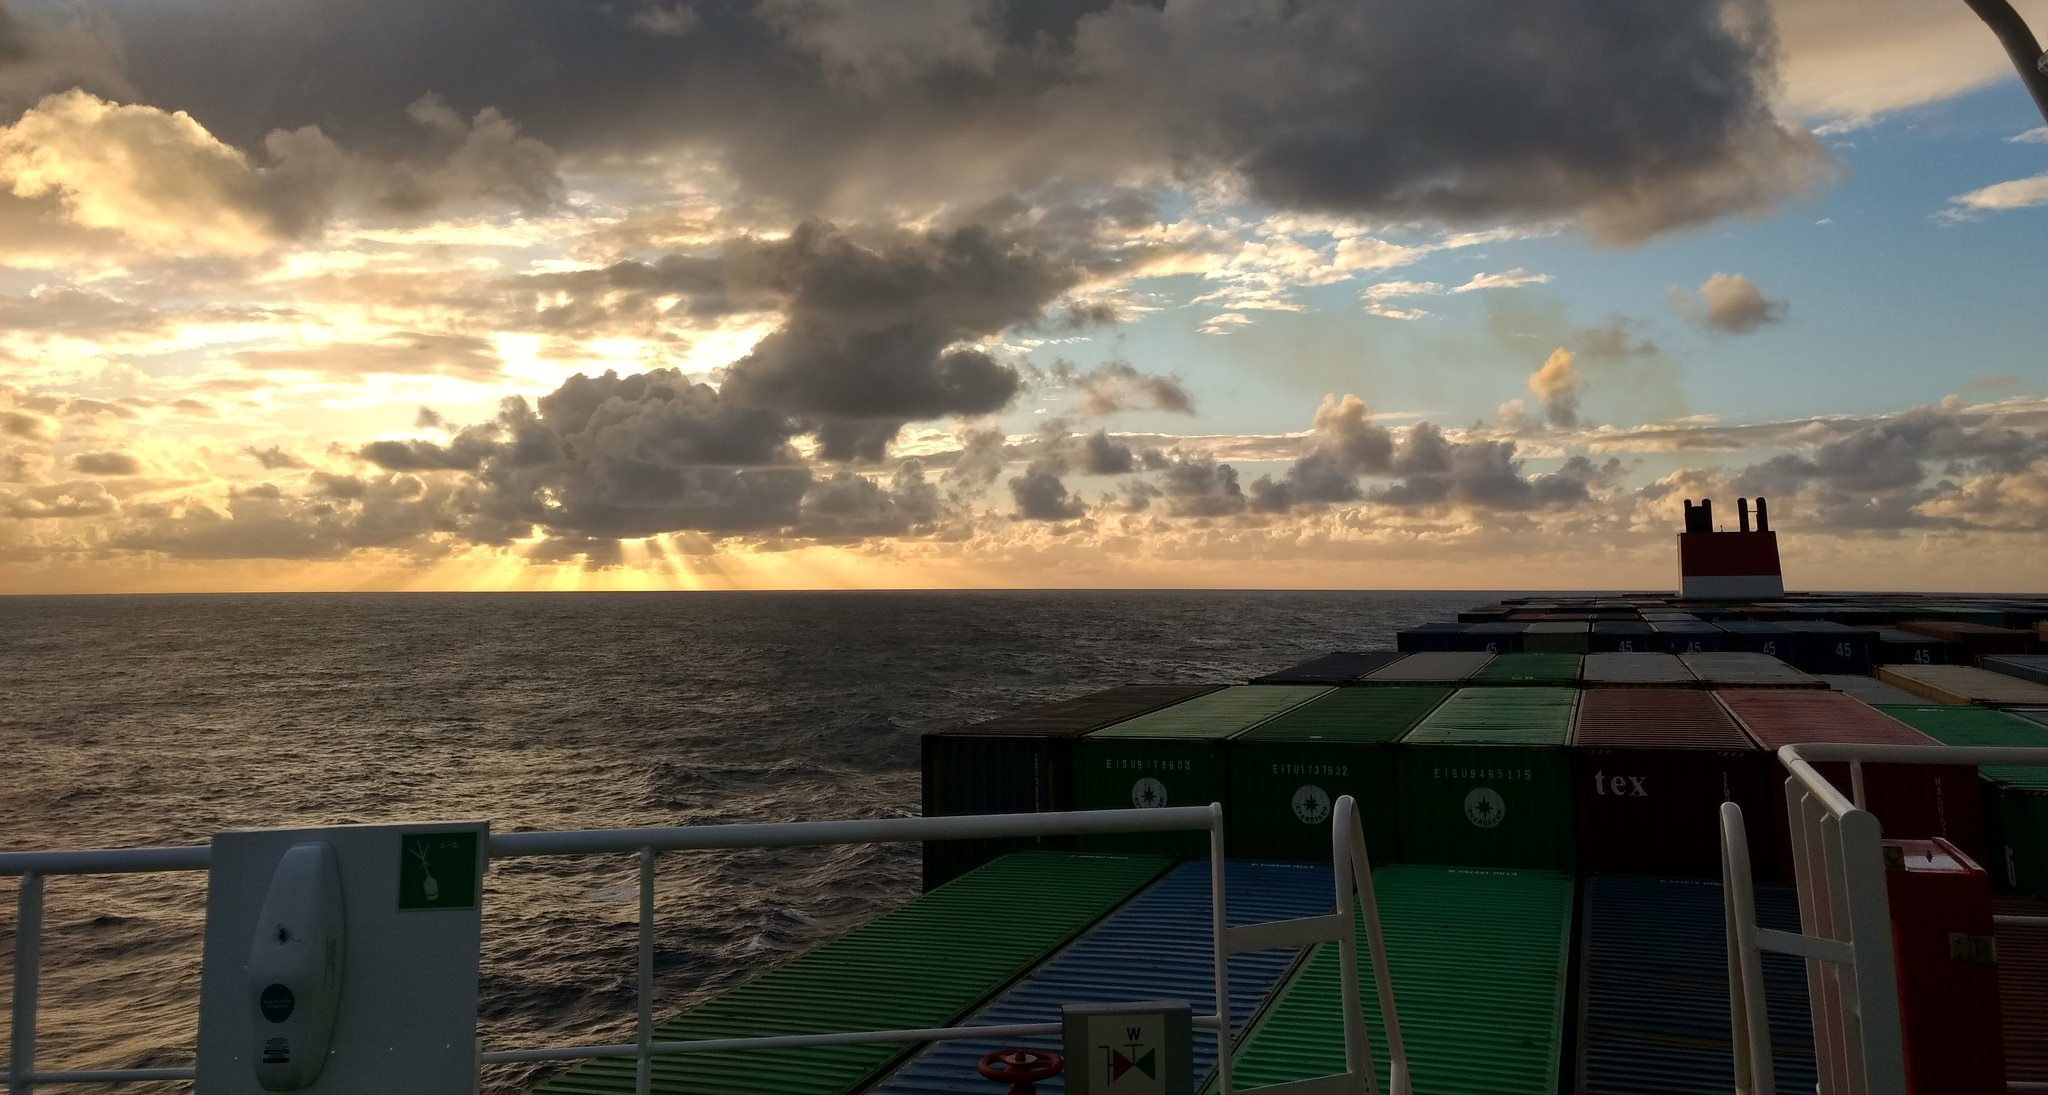 Crossing the Pacific Ocean by Cargo Ship